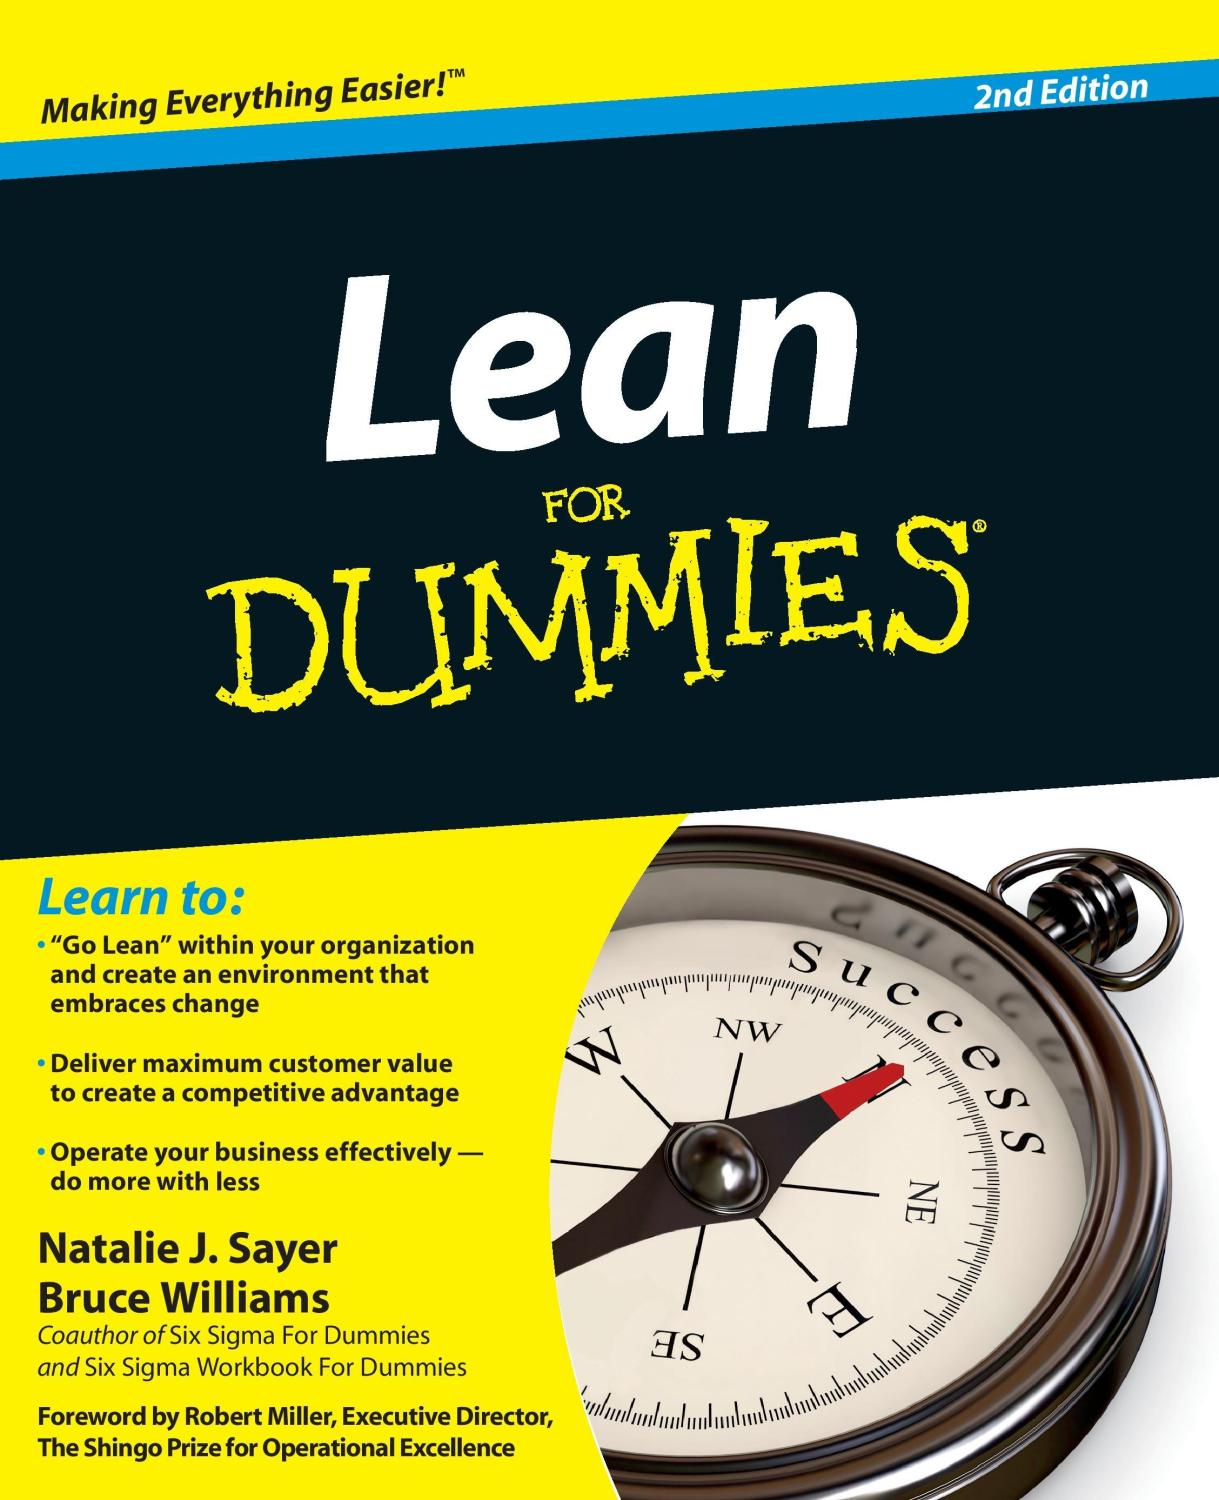 Lean for Dummies, 2nd Edition - Natalie J. Sayer